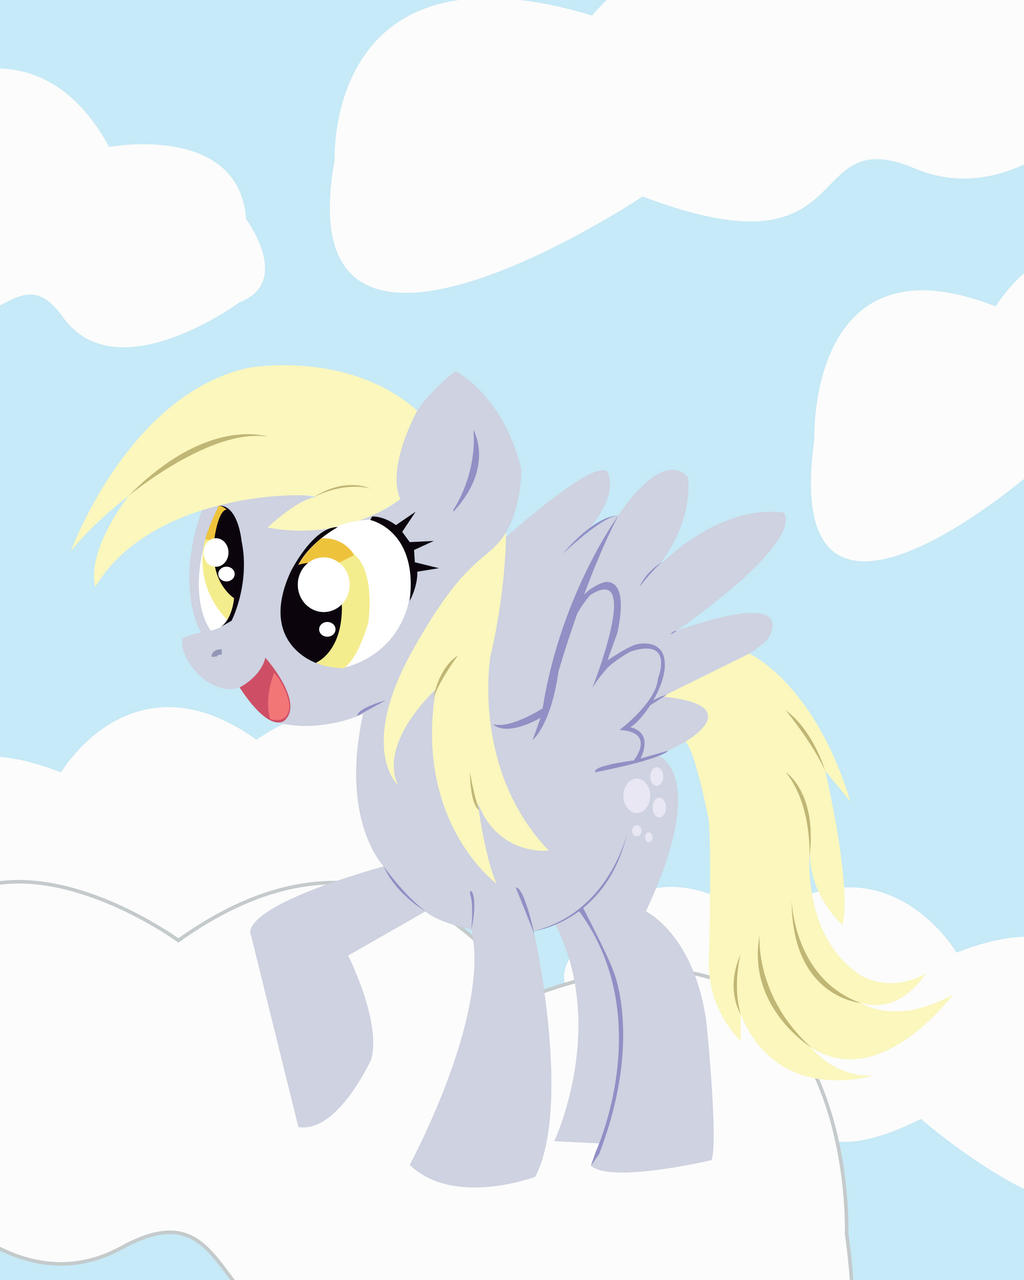 Derpy Hooves Vectoring By Chkimbrough On Deviantart